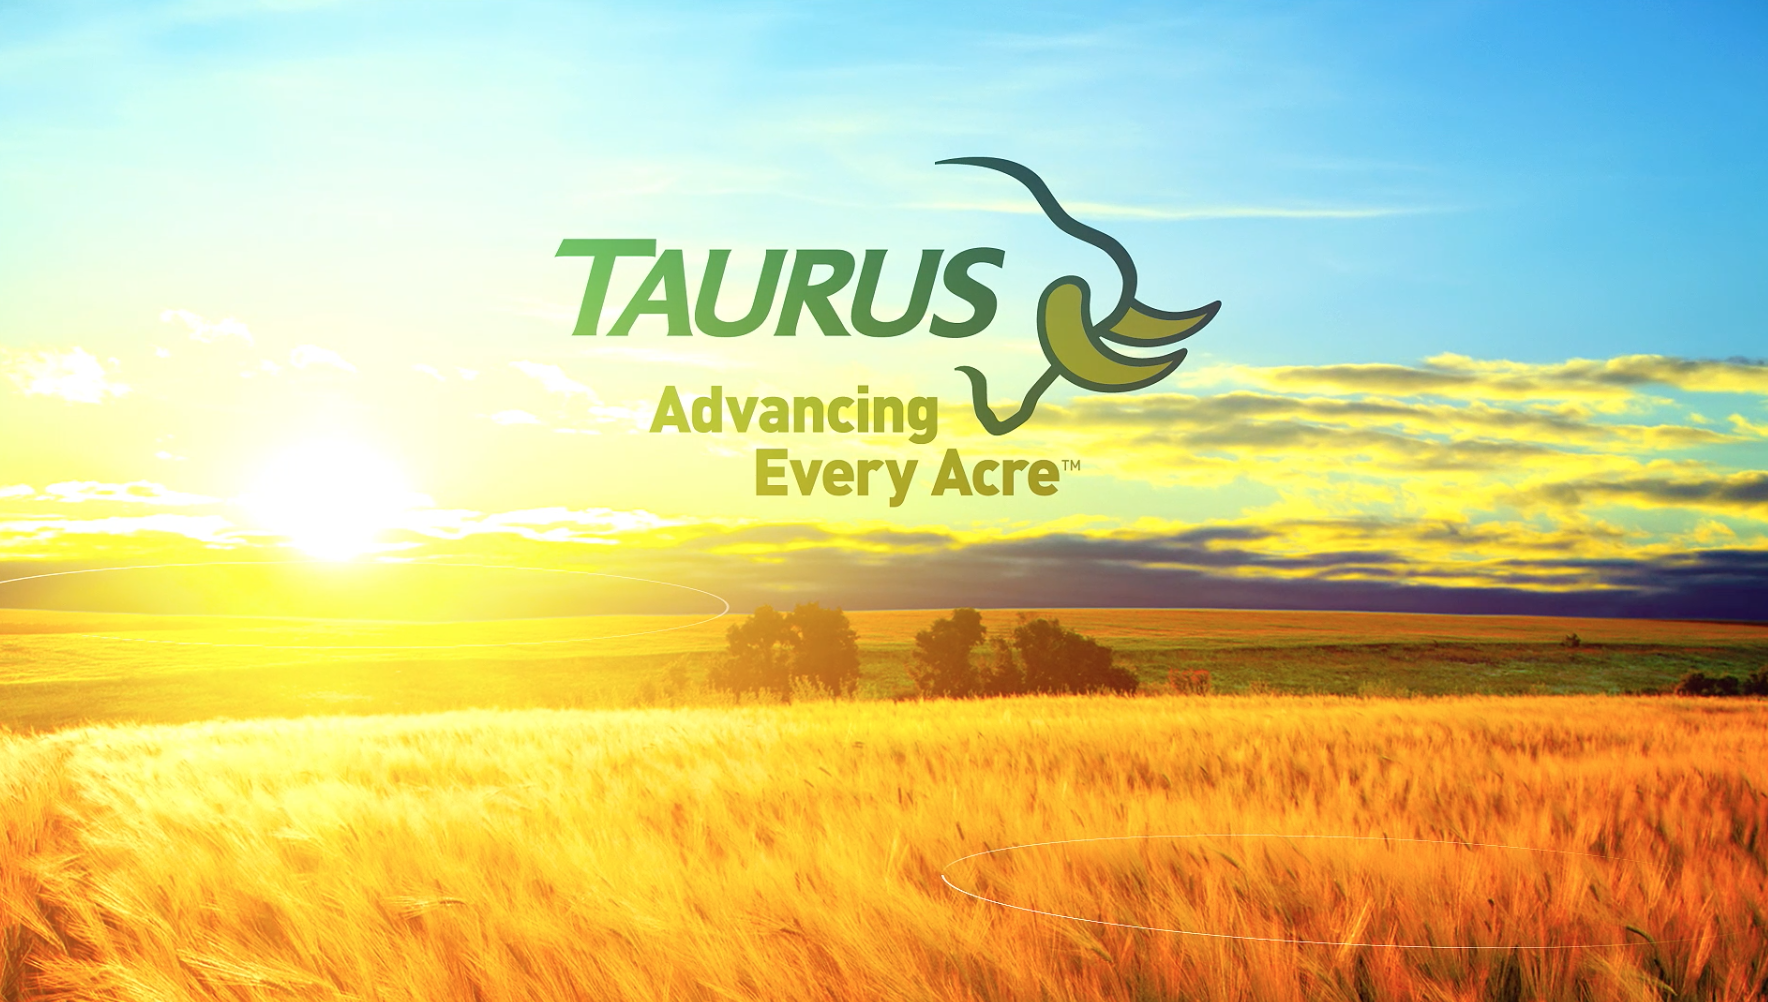 Taurus Agricultural Marketing